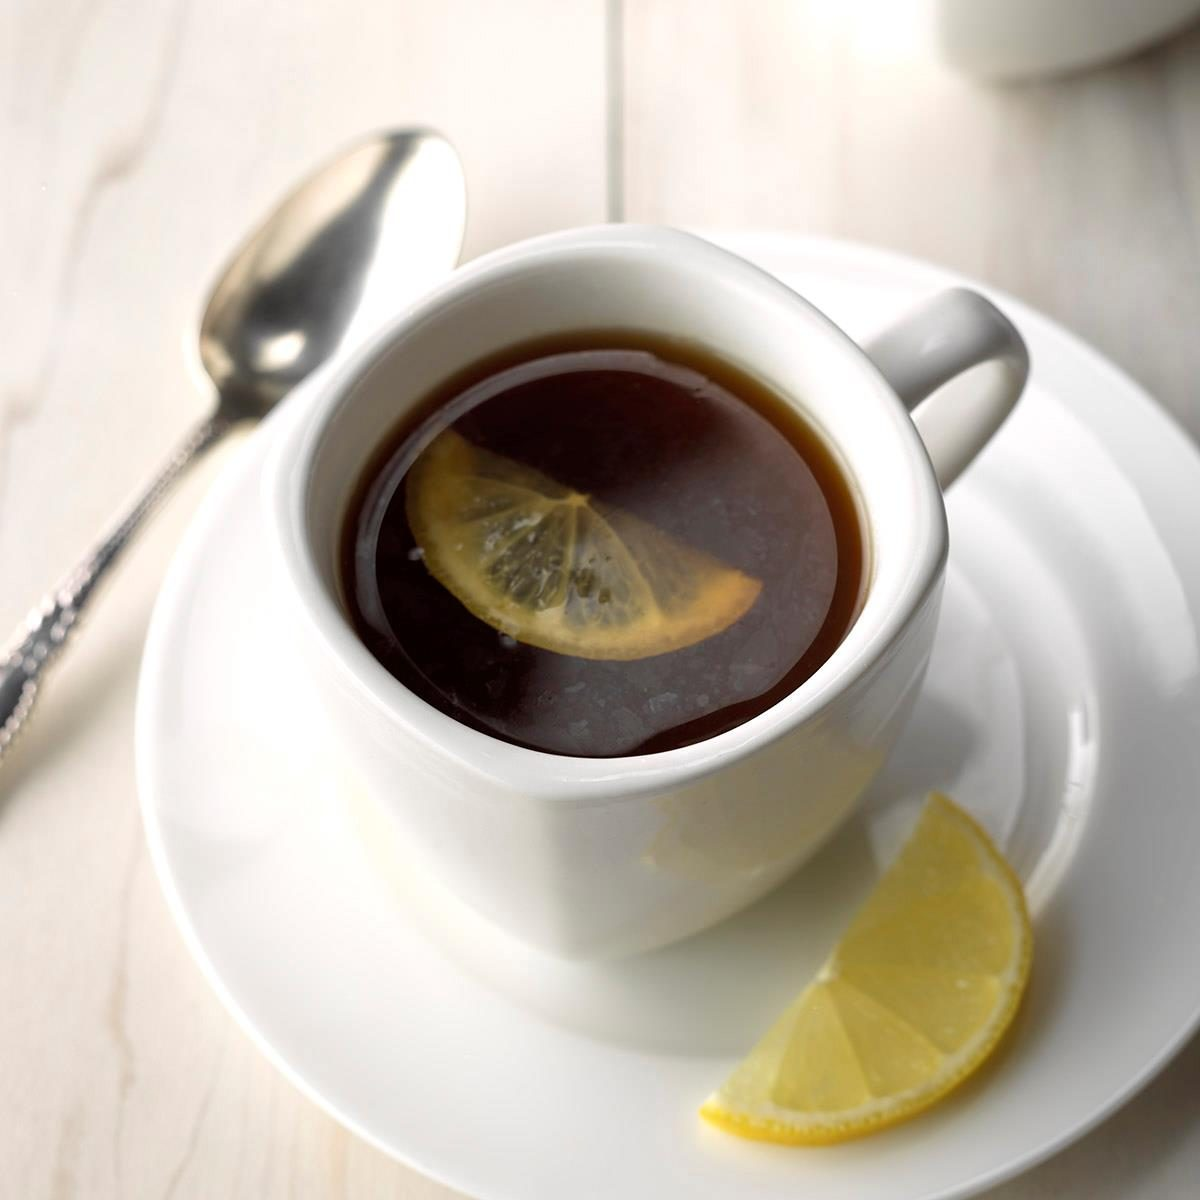 Could This Coffee Shop Tea Help You Feel Better?